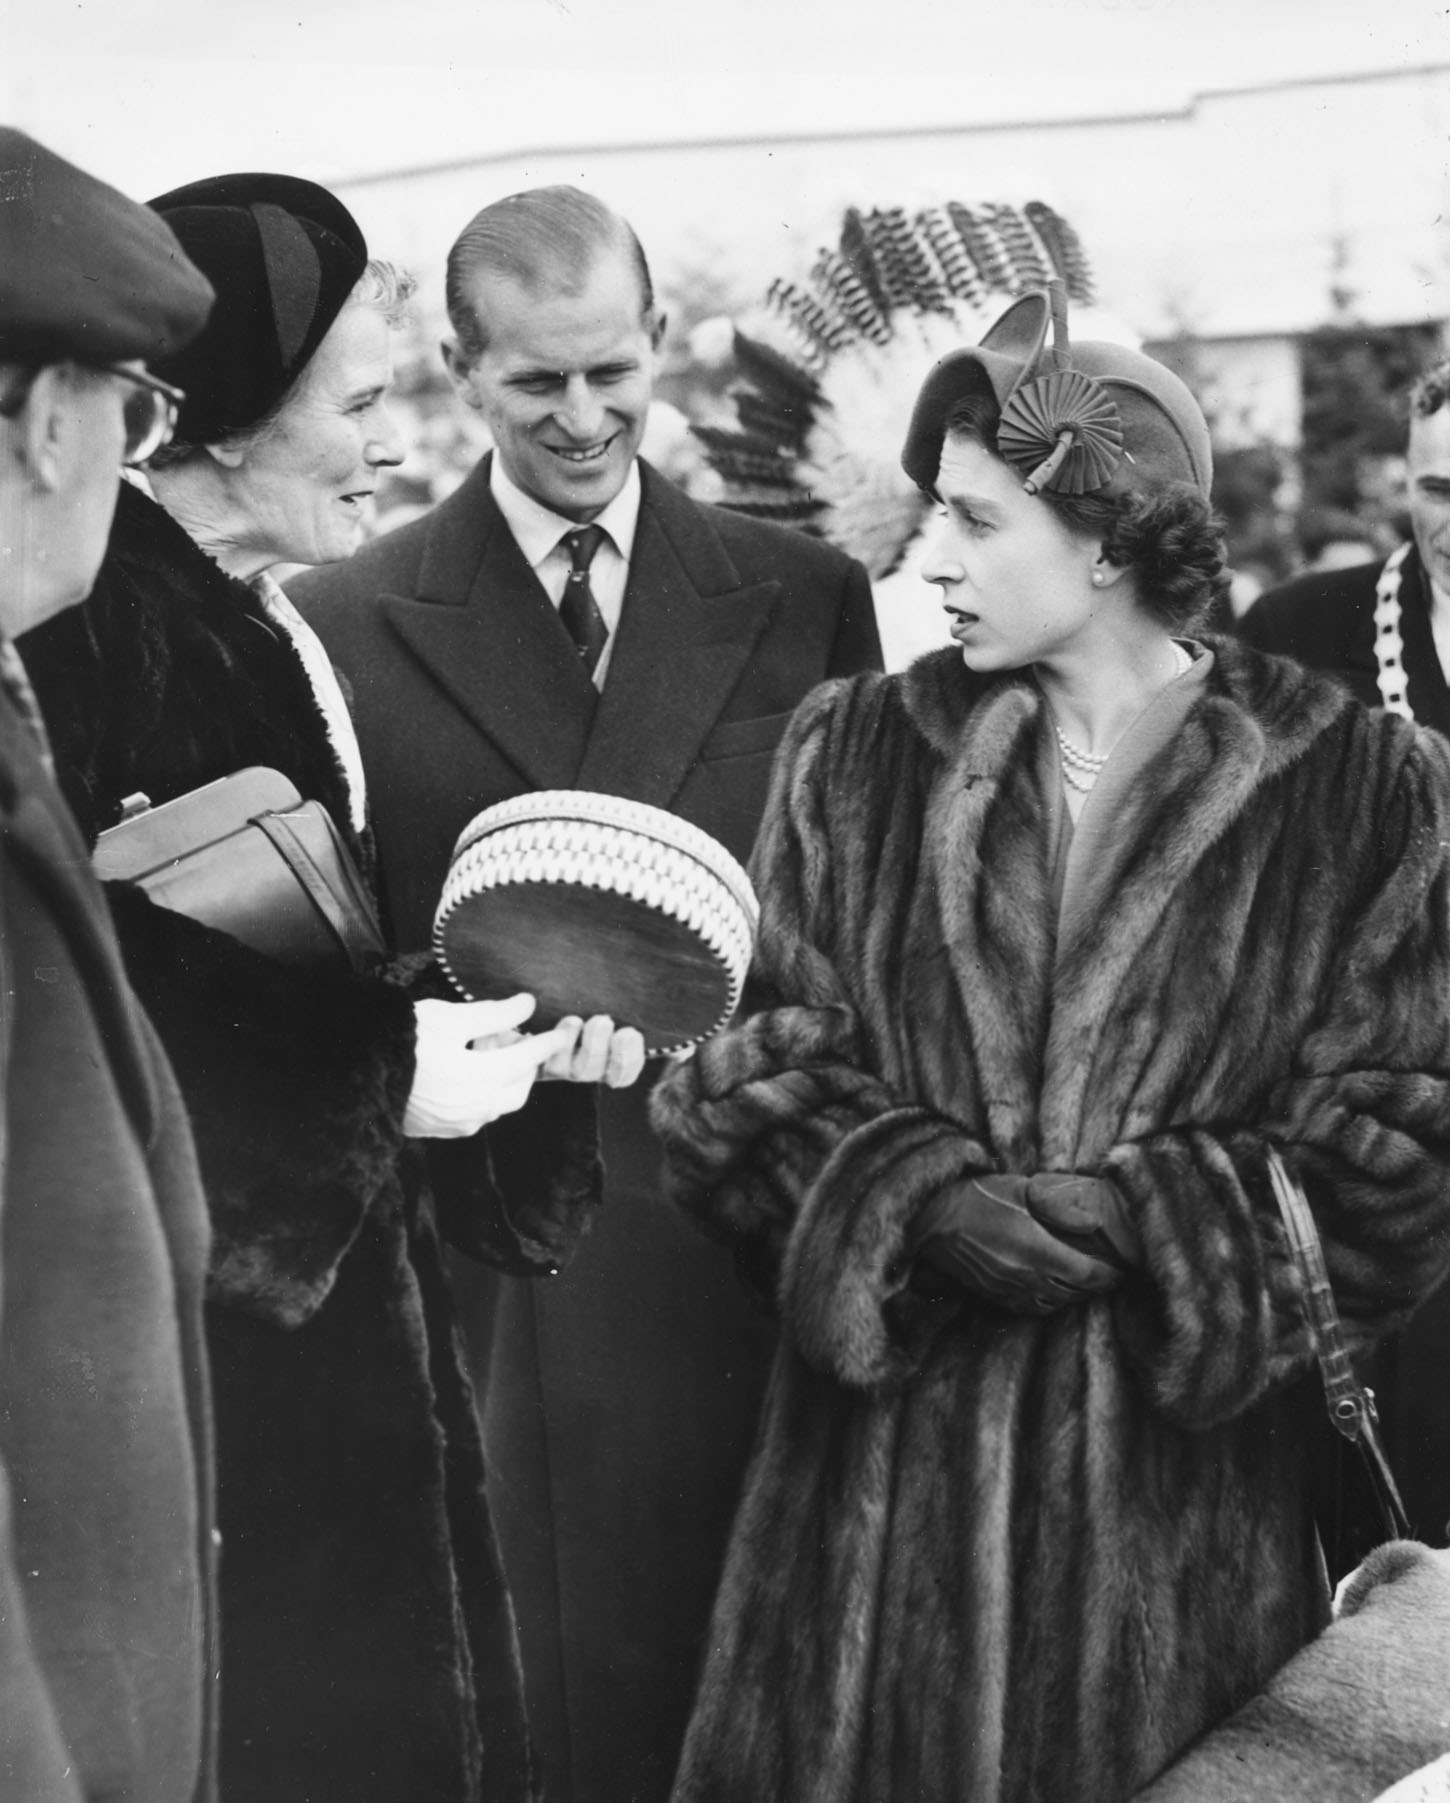 Princess Elizabeth and Prince Philip, the Duke of Edinburgh, admiring an Indian basket weave during a visit to Fort William in Ontario, November 2nd 1951. (Photo by Fox Photos/Hulton Archive/Getty Images)